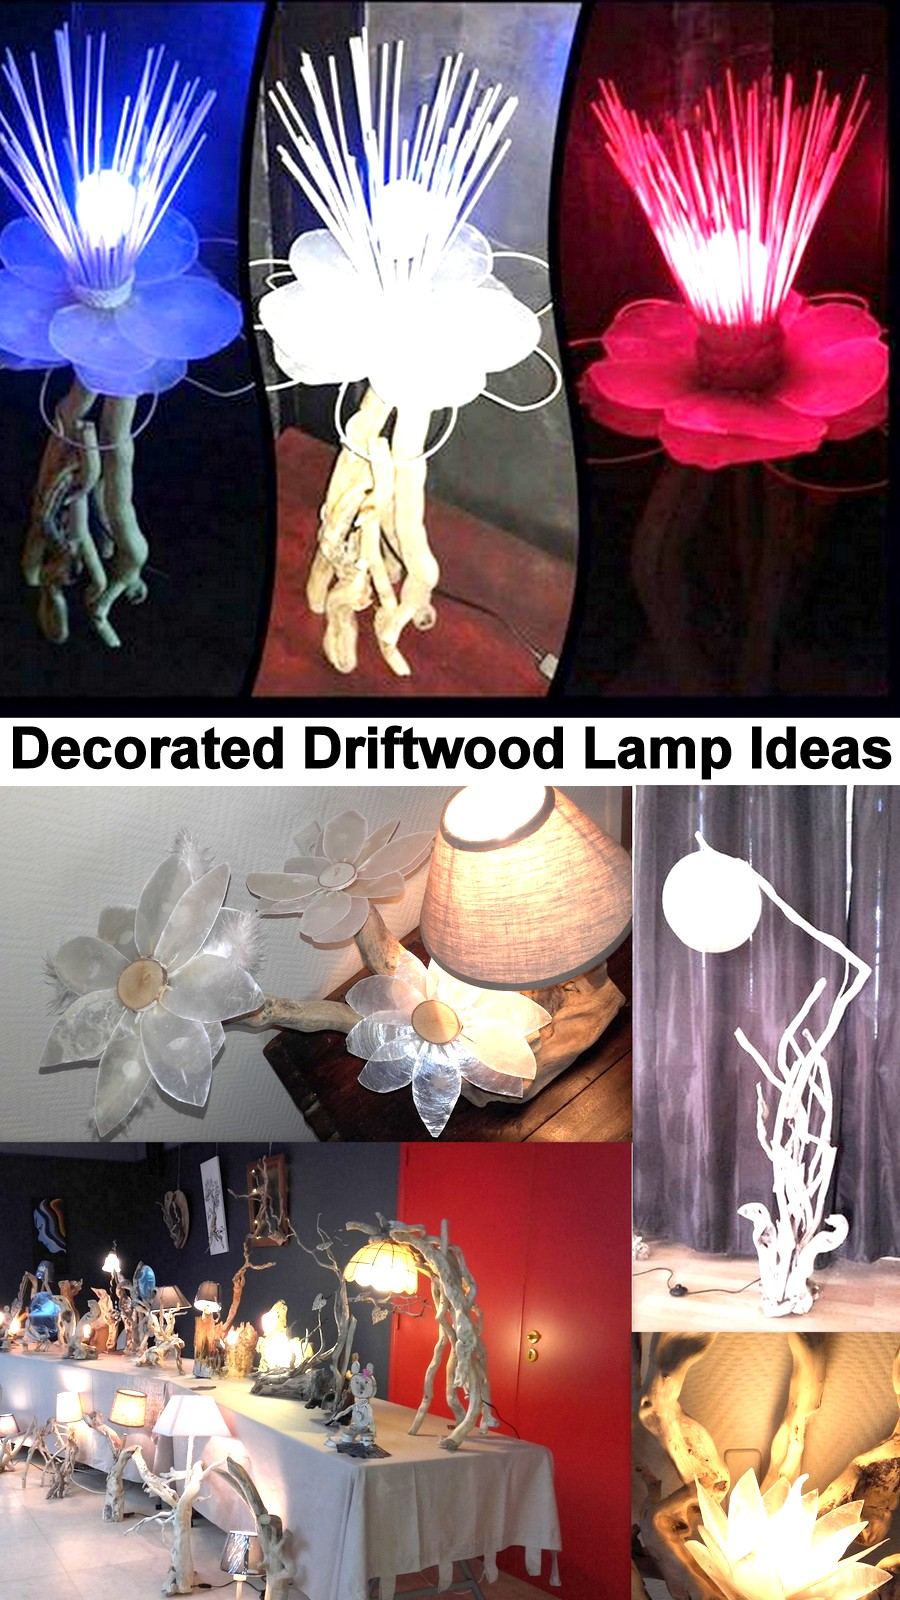 Decorated Driftwood Lamp Ideas